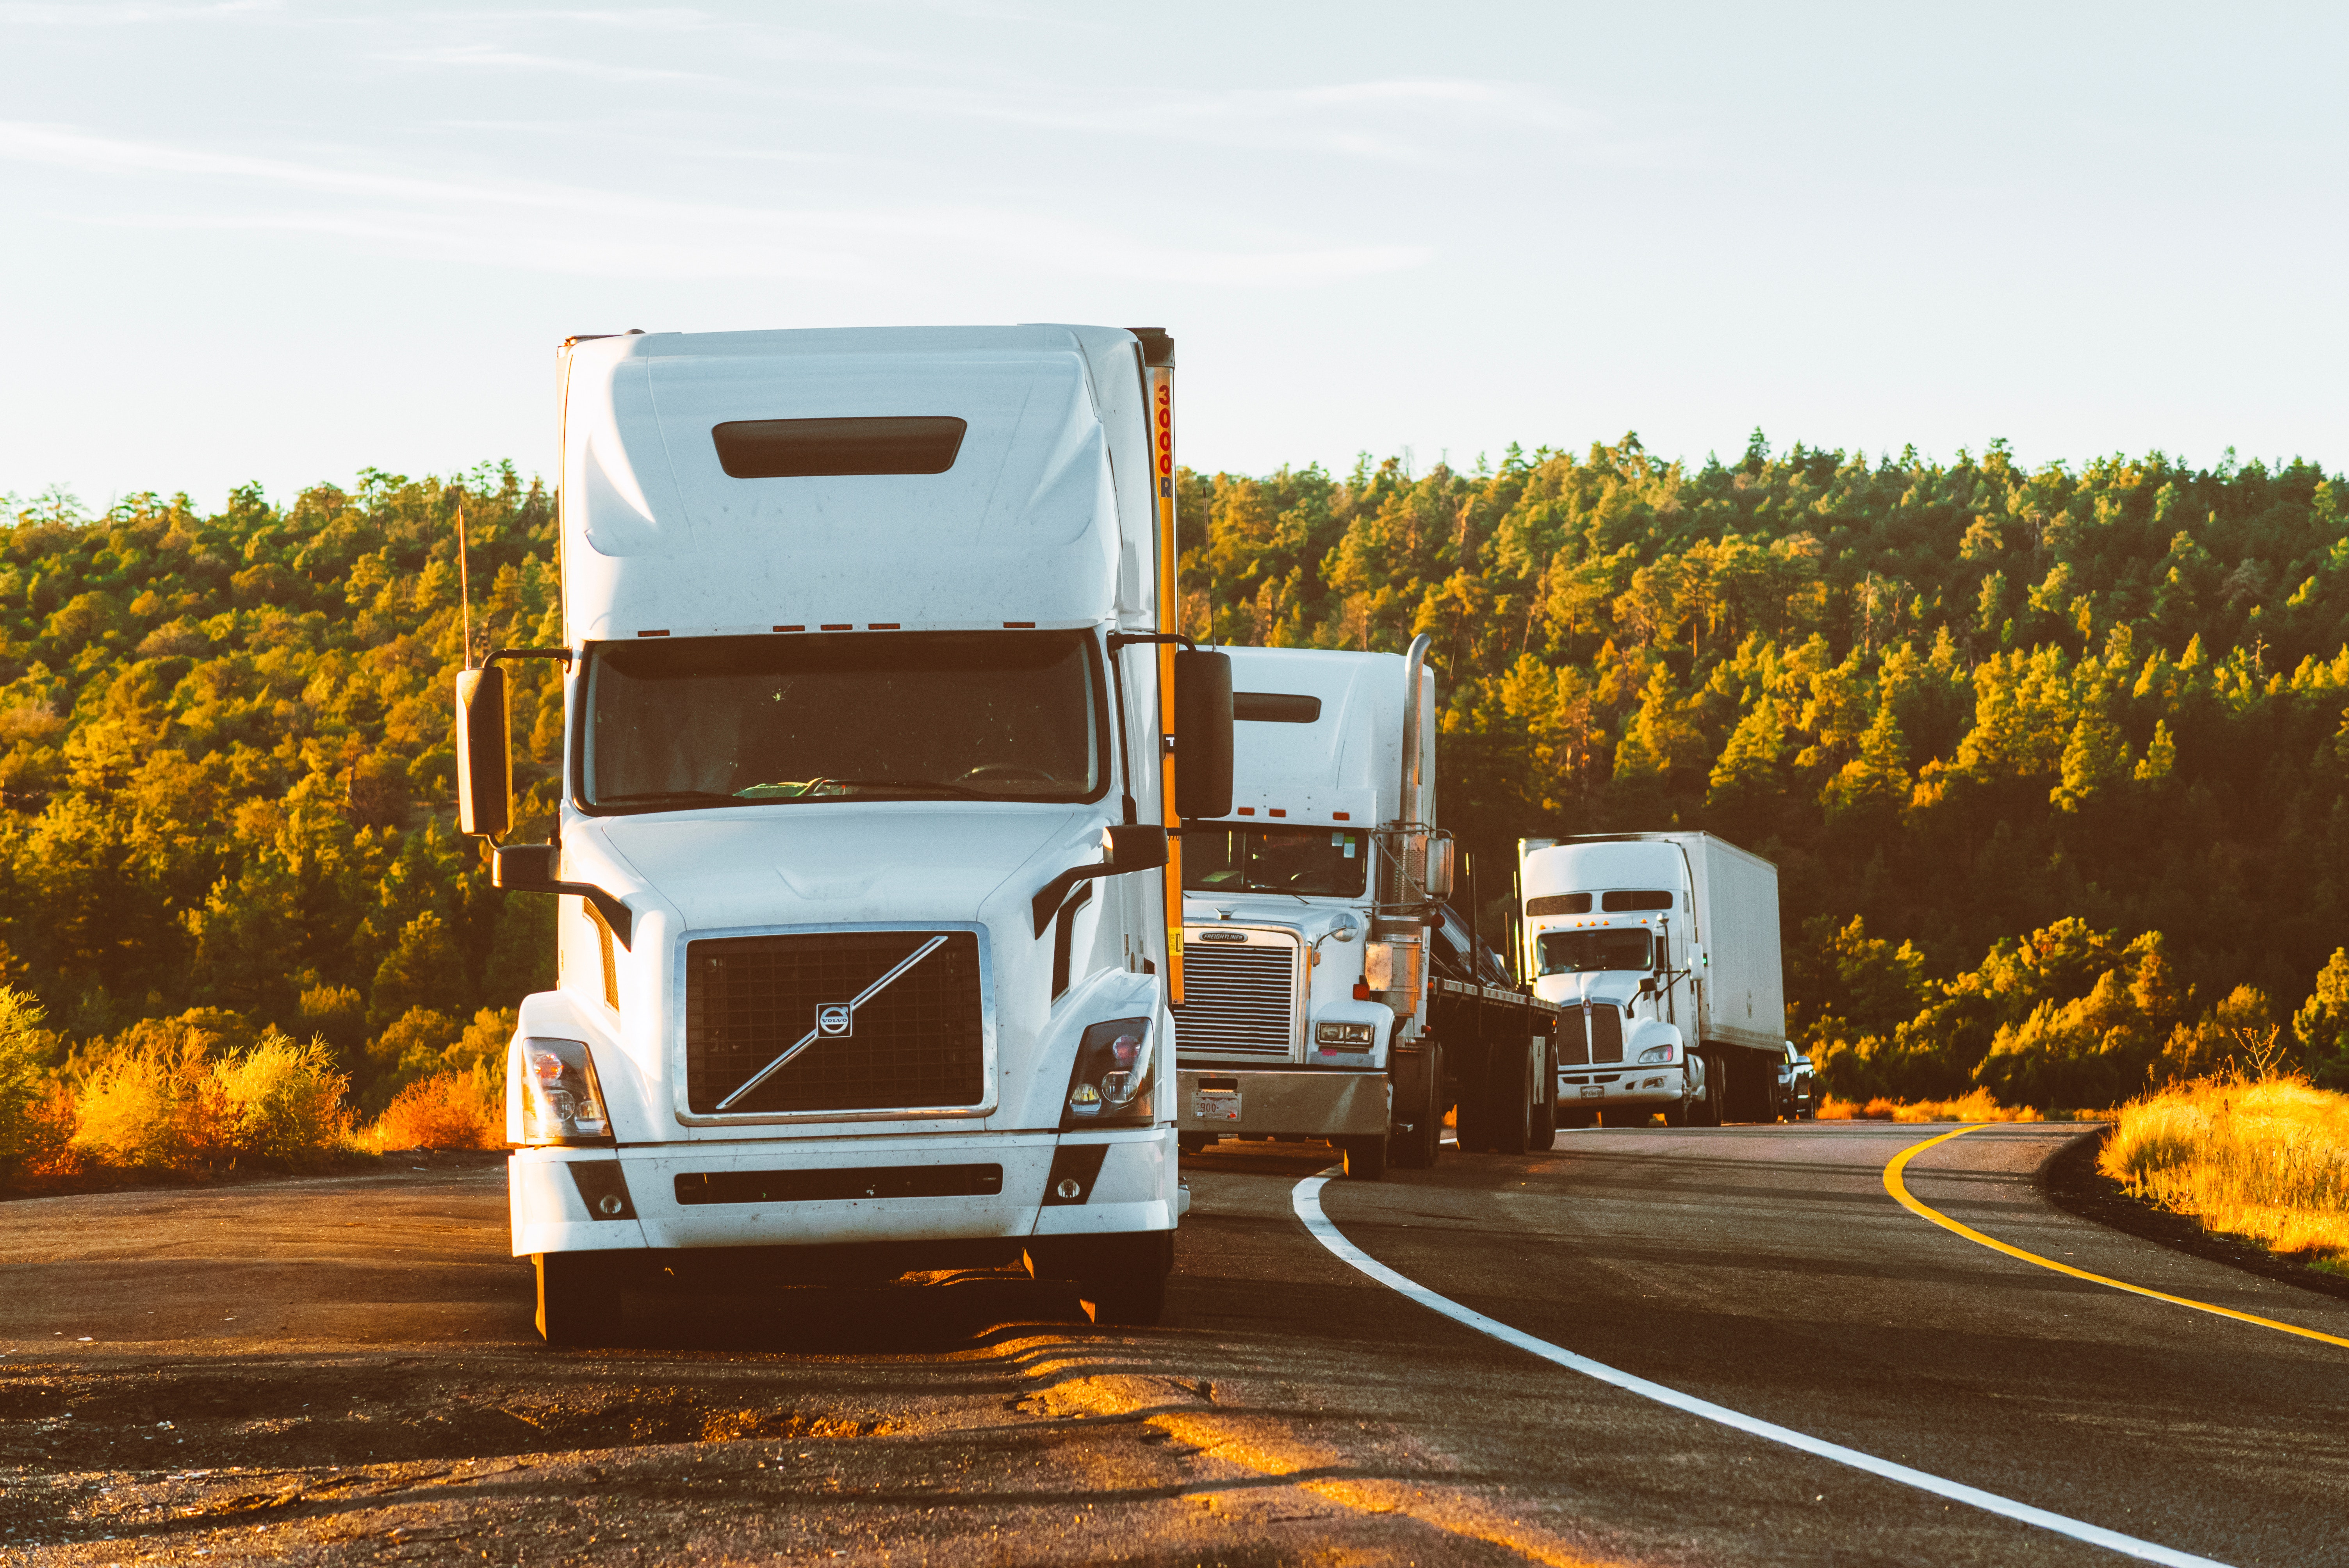 Cohda Wireless developing truck platooning solution